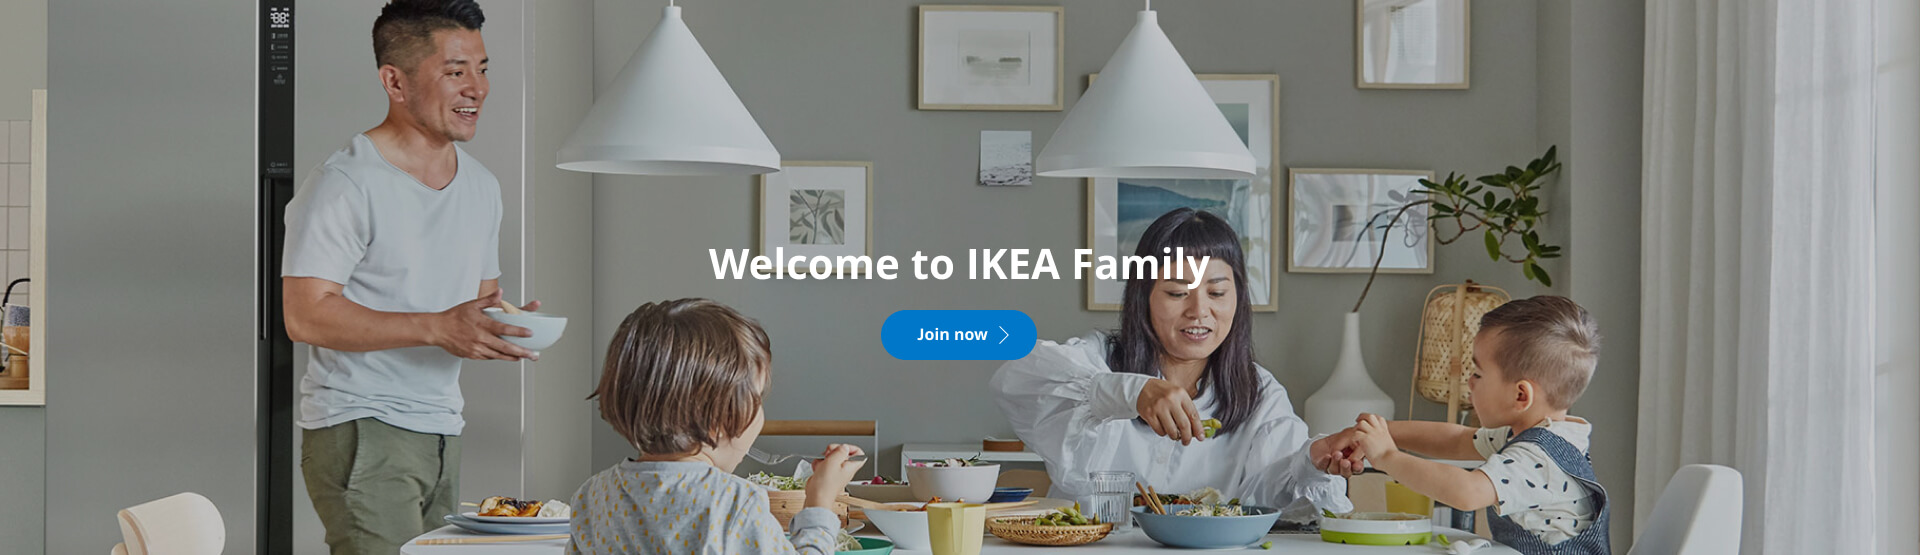 IKEA Family - Welcome to IKEA Family